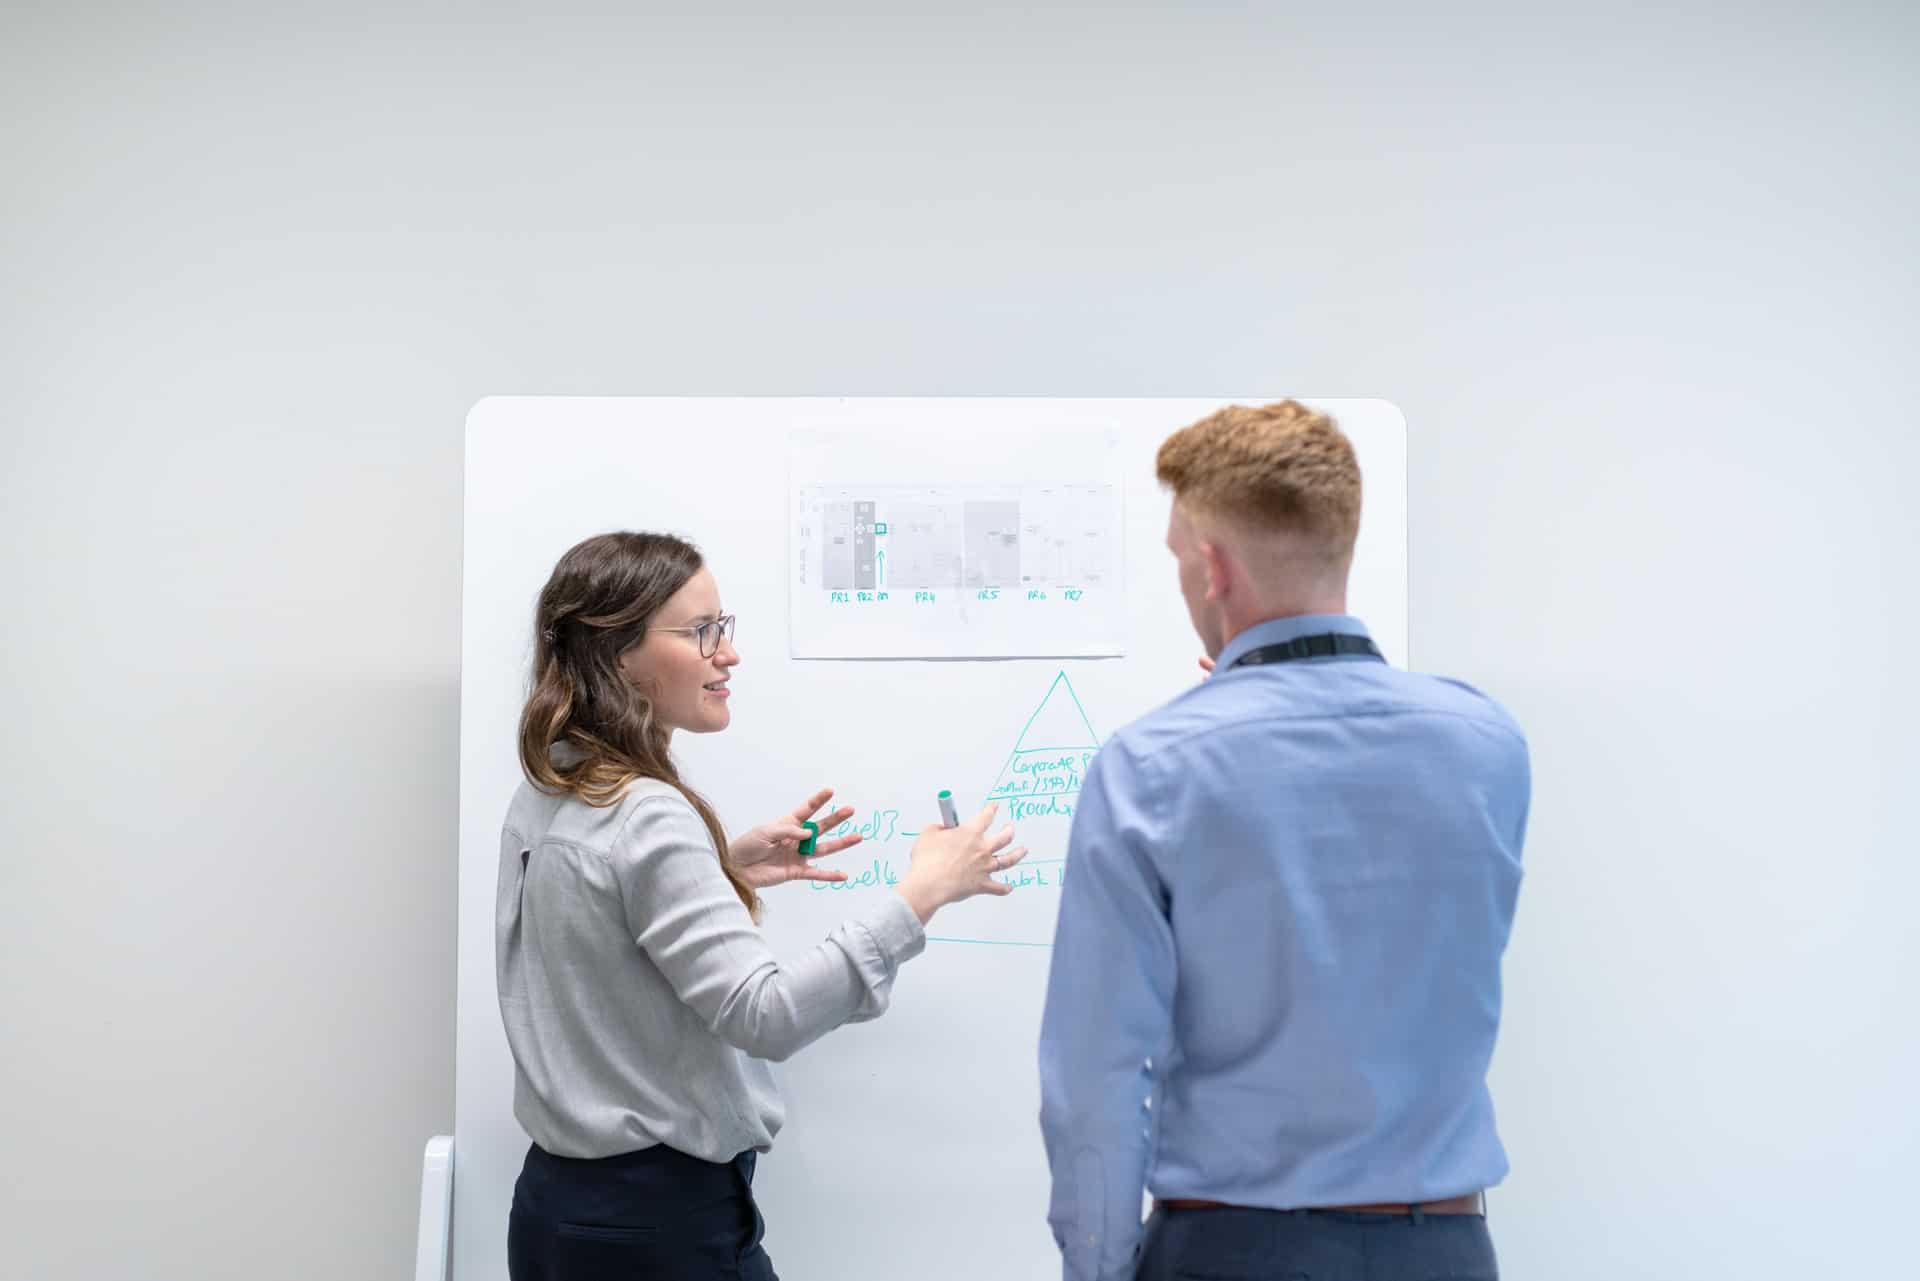 Man and woman in front of whiteboard